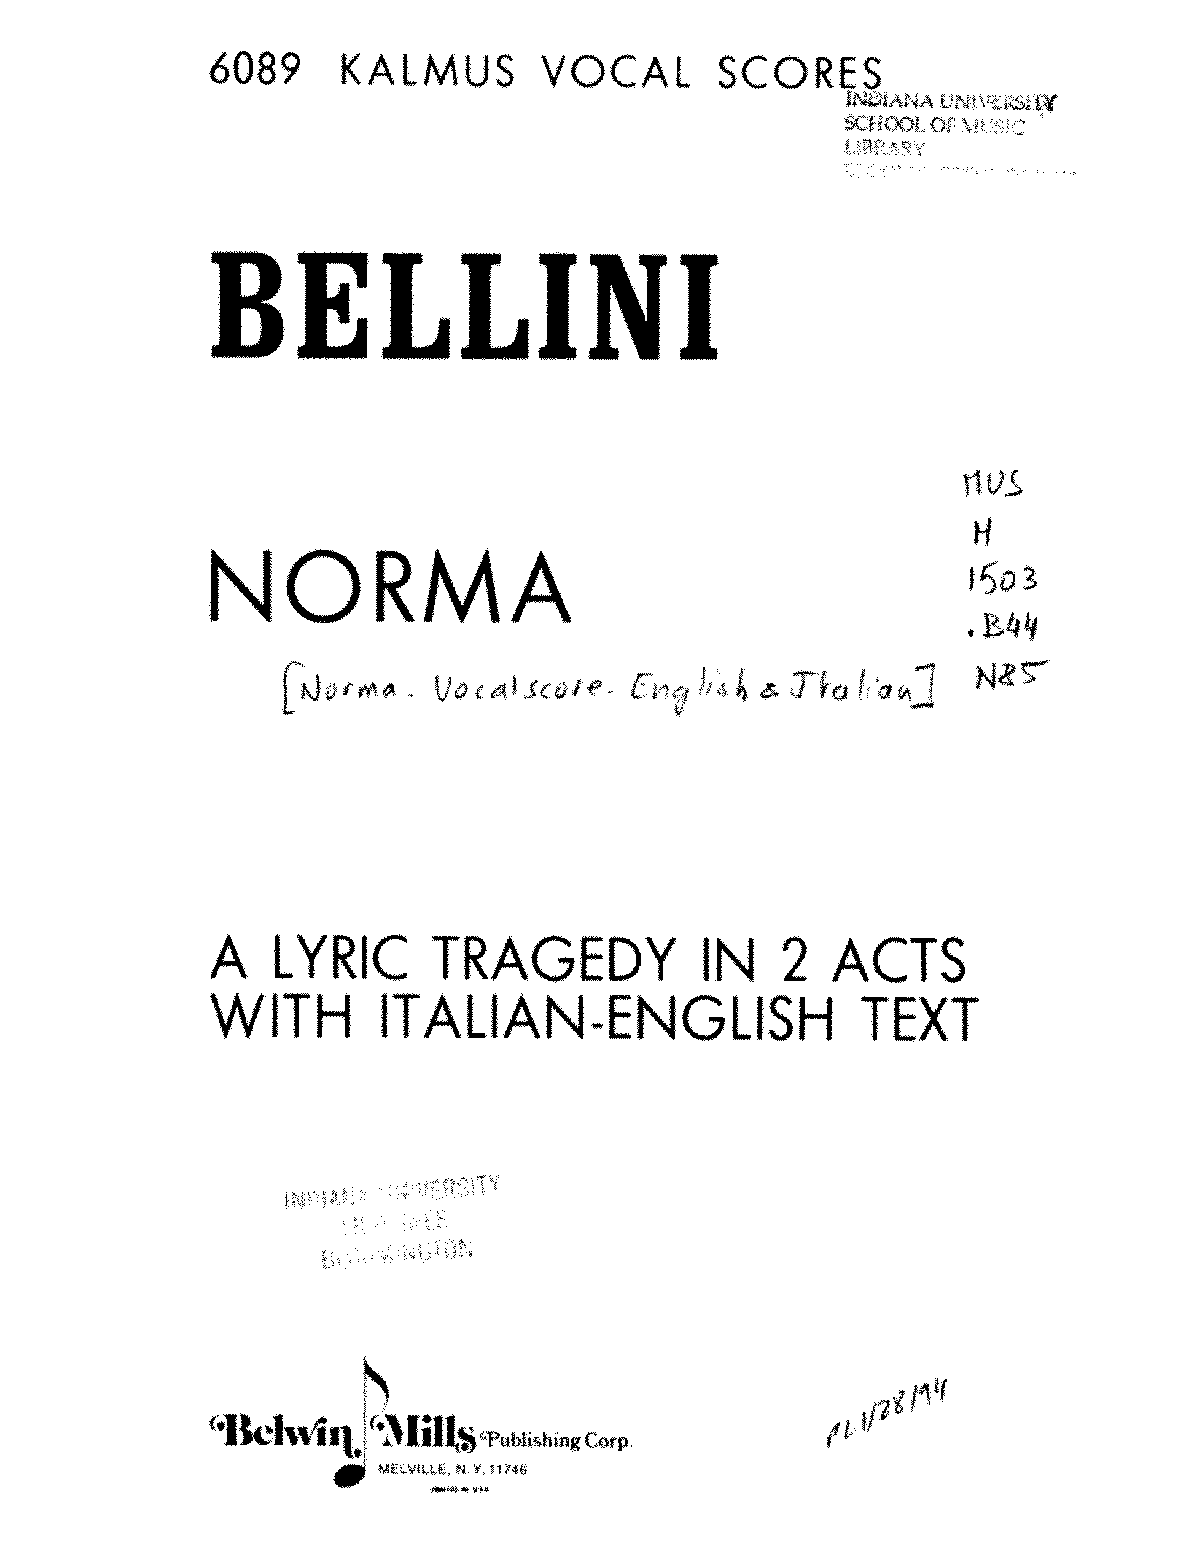 Bellini Norma Vocal Score.pdf